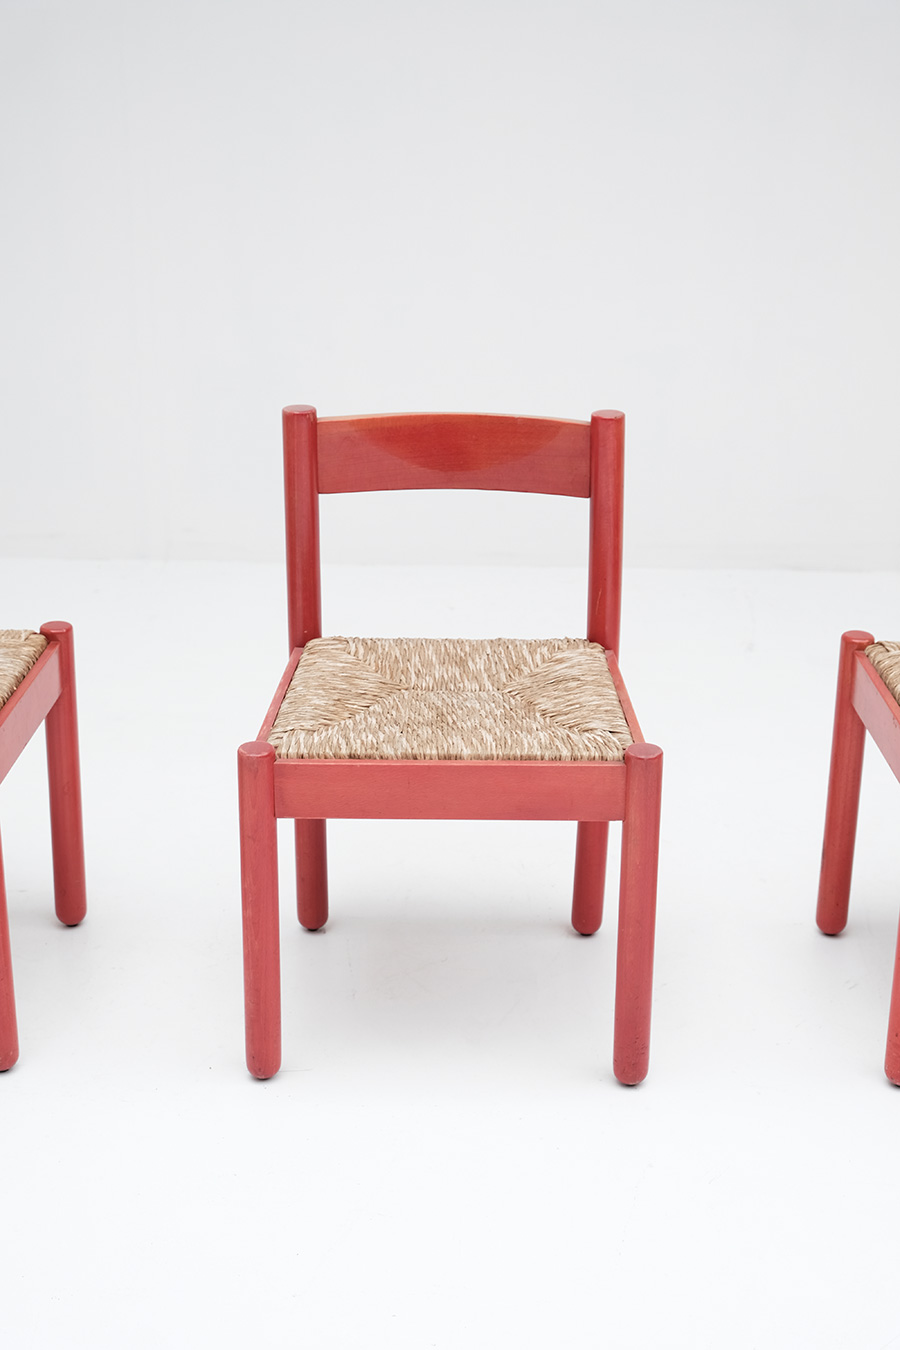 Vico Magistretti Red Carimate chairs image 4